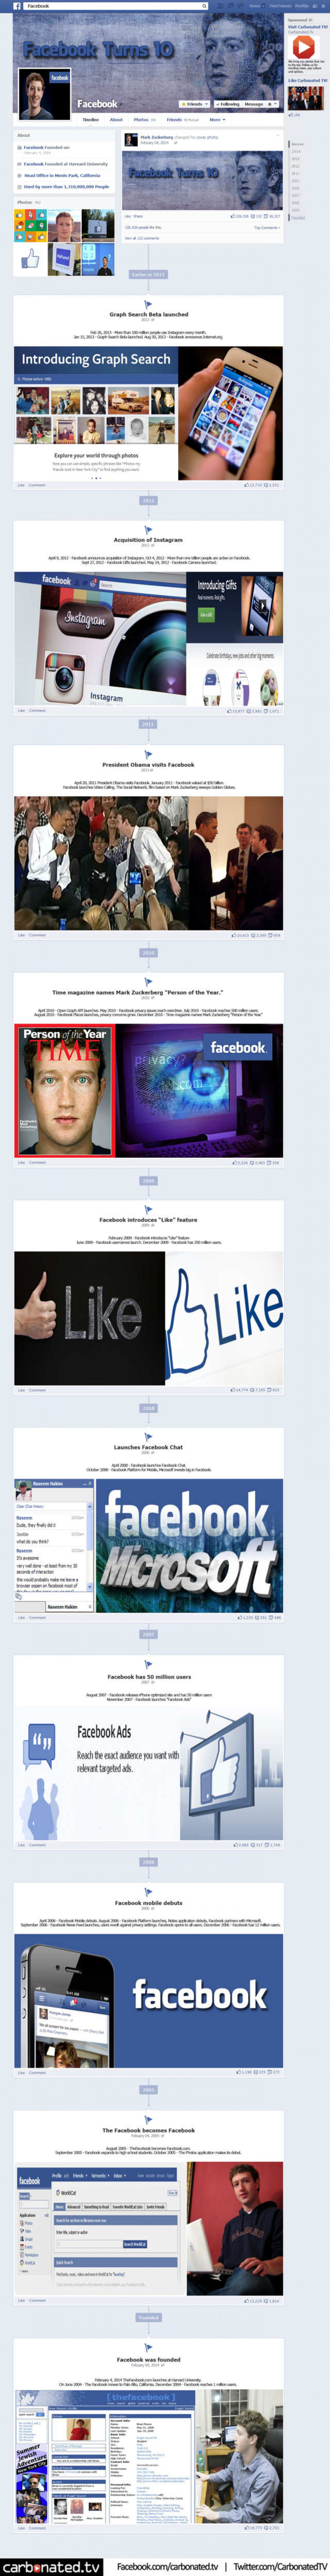 Facebook Turns 10: Journey From A Million To A Billion Users Infographic